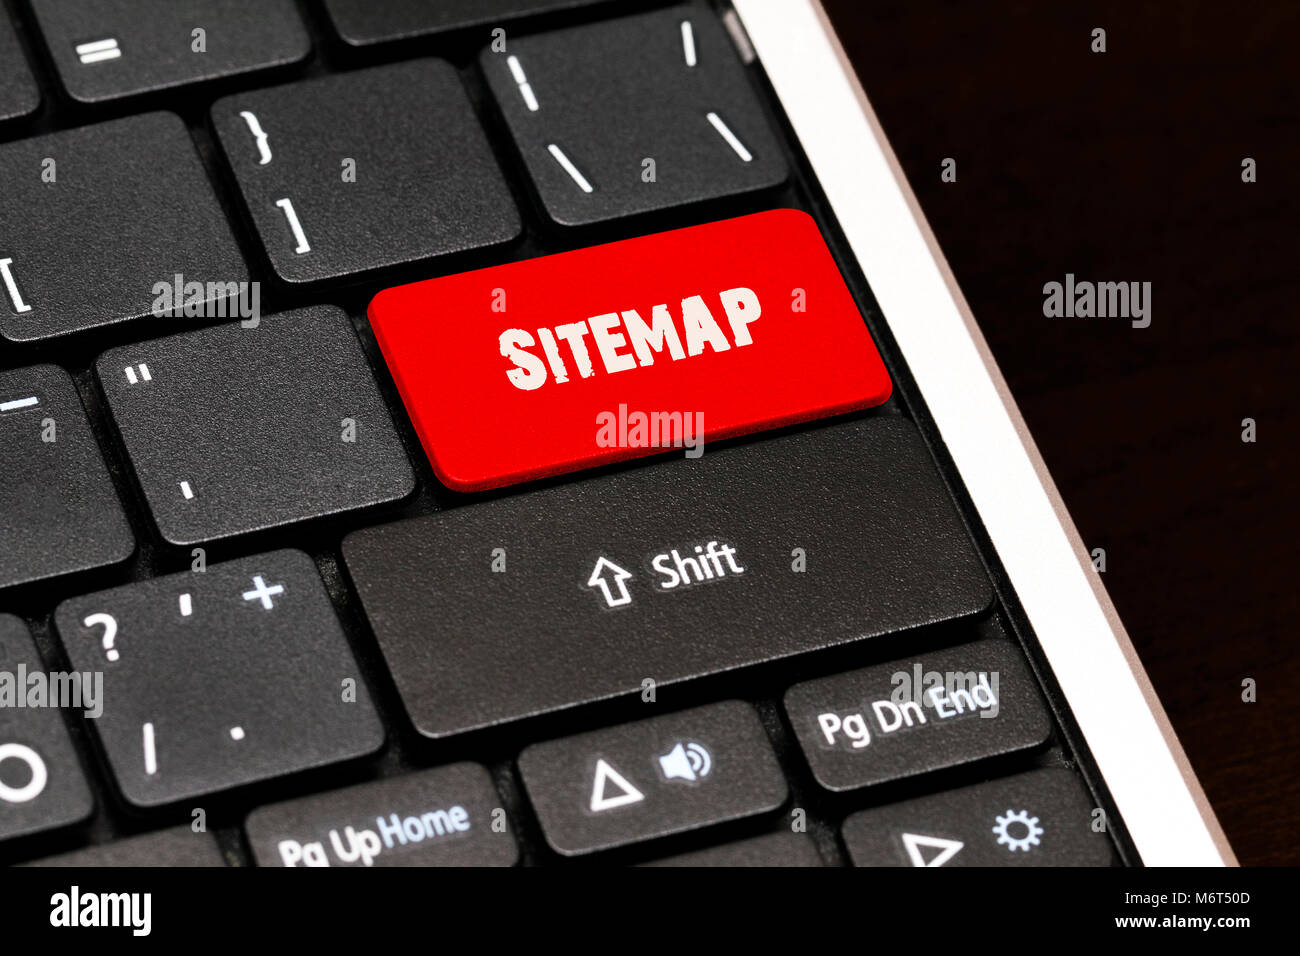 Sitemap on Red Enter Button on black keyboard. Stock Photo